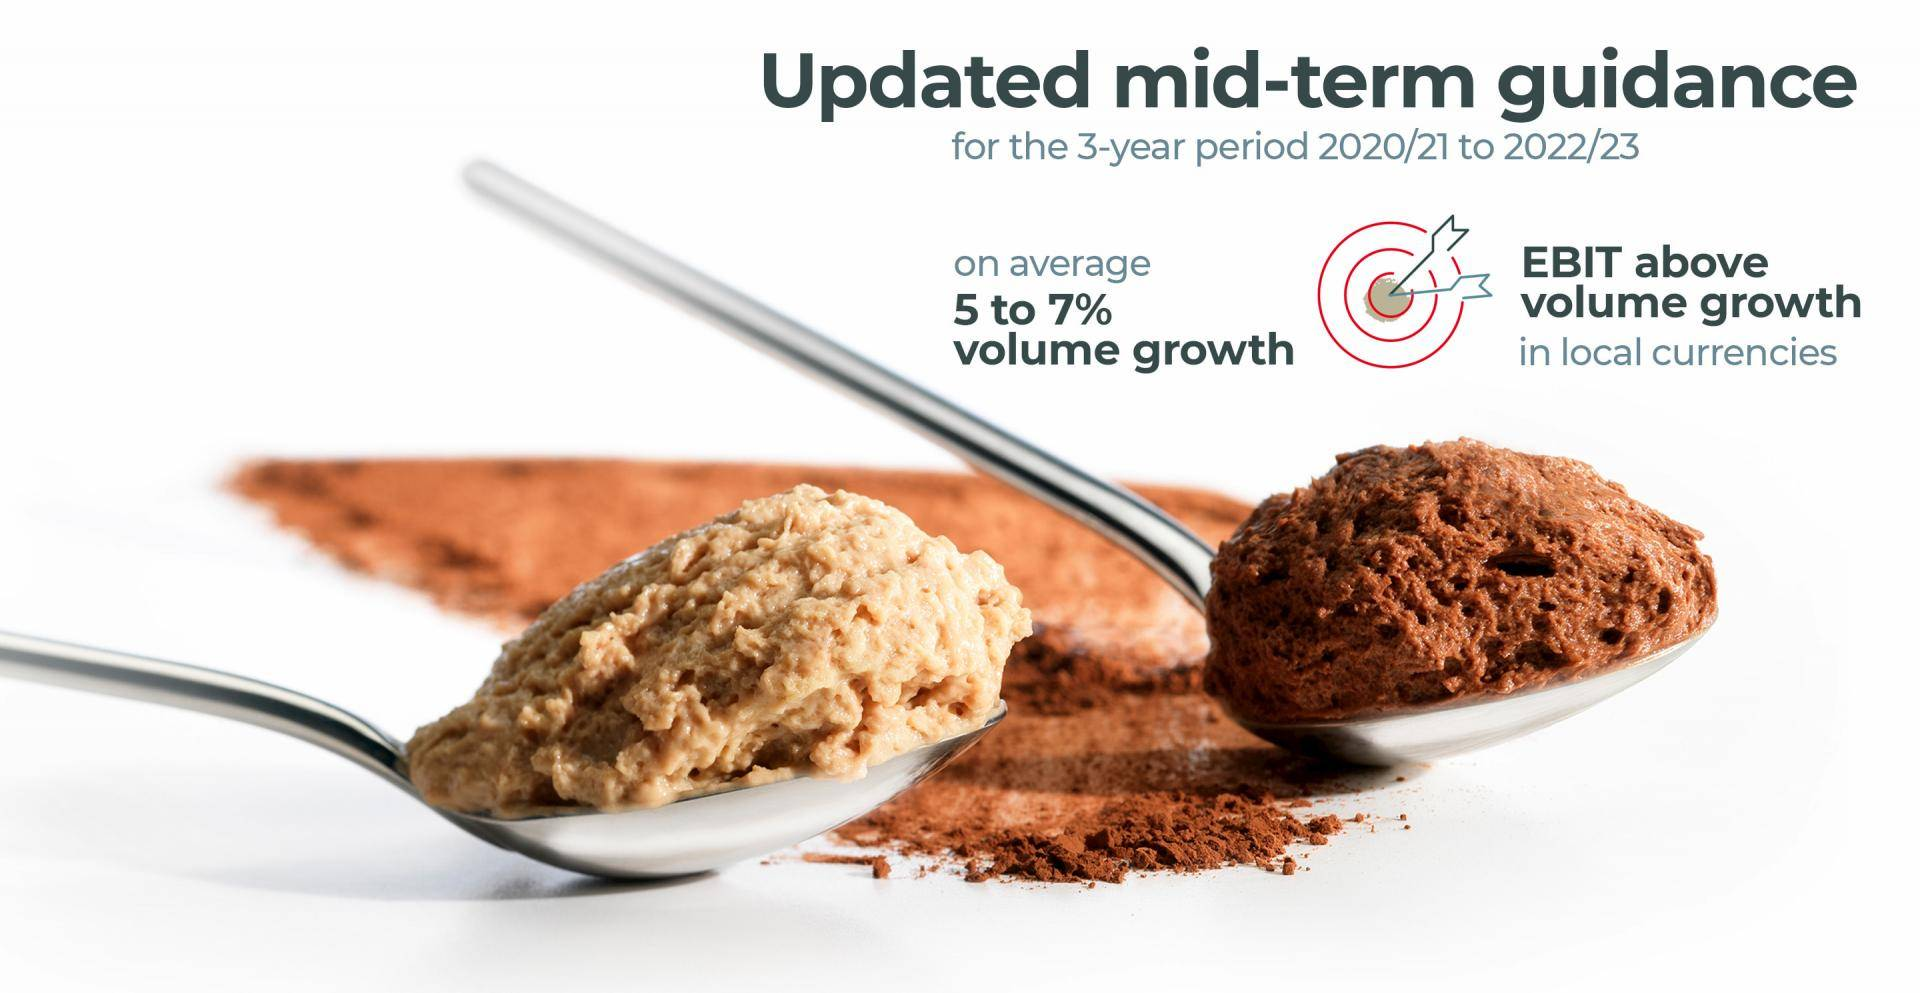 Mid-term guidance Fiscal Year 2019/20 Barry Callebaut